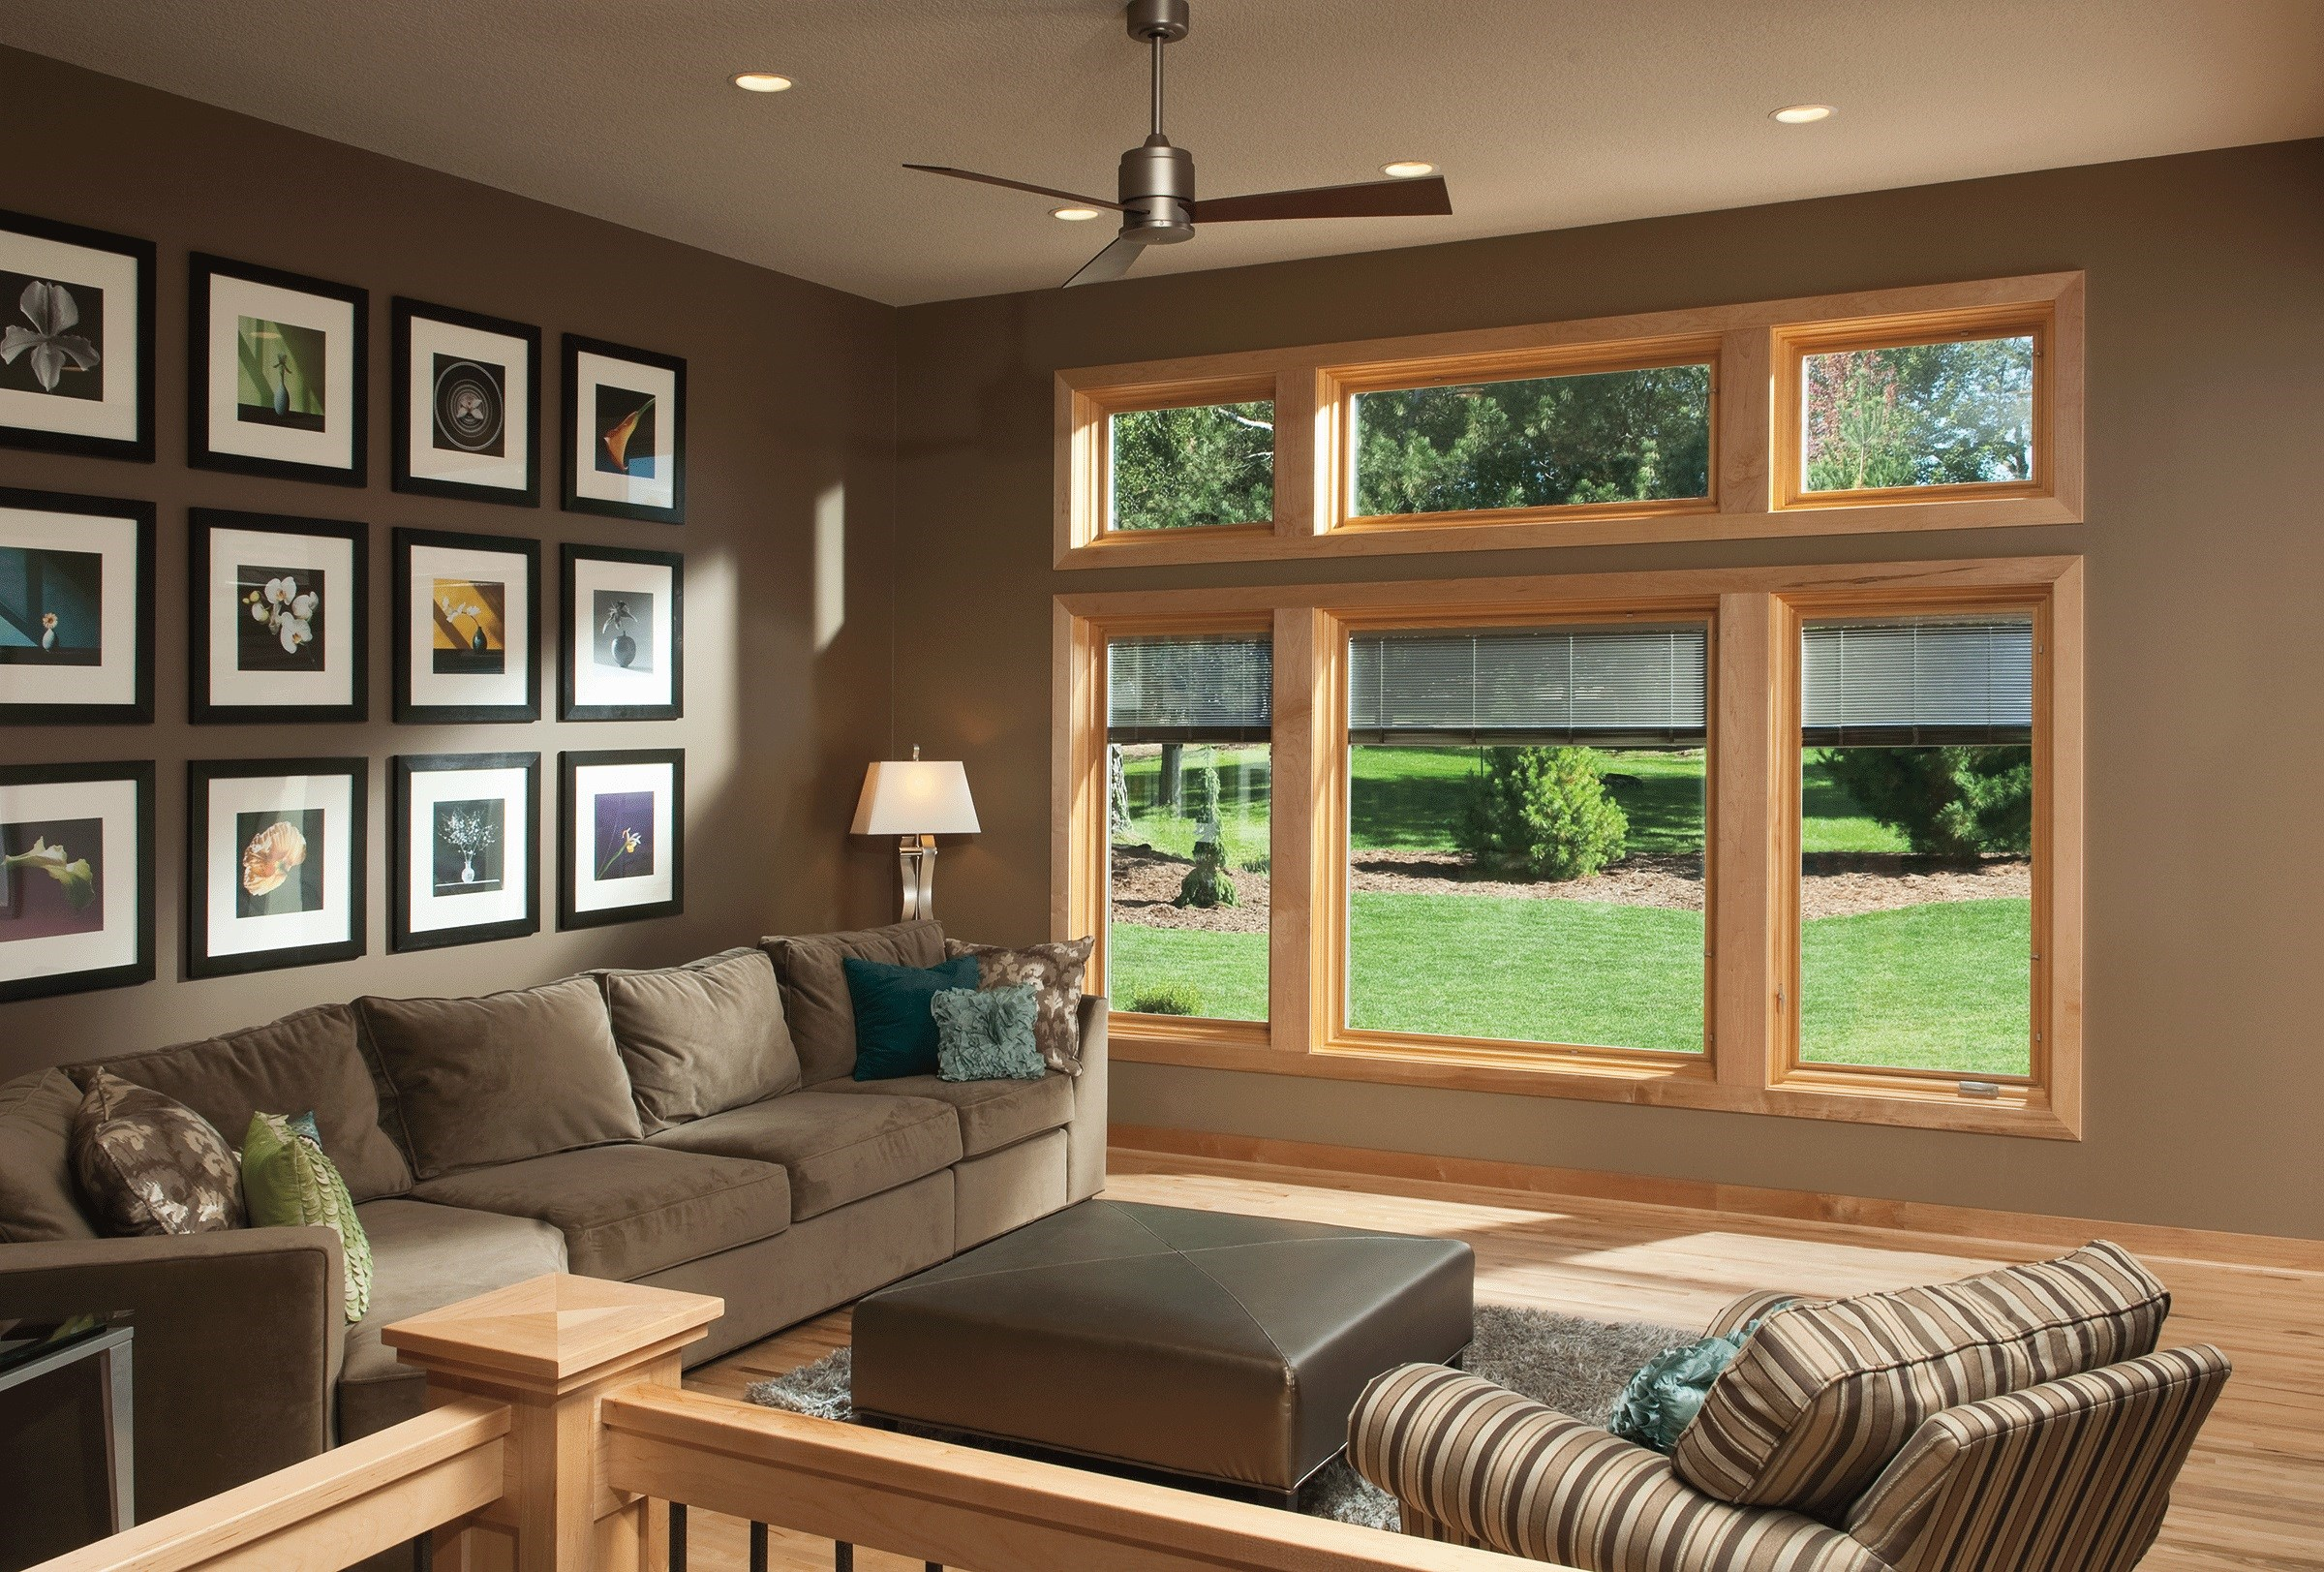 mocca Pella Windows matched with tan wall and tan sofa set plus fan ceiling ideas